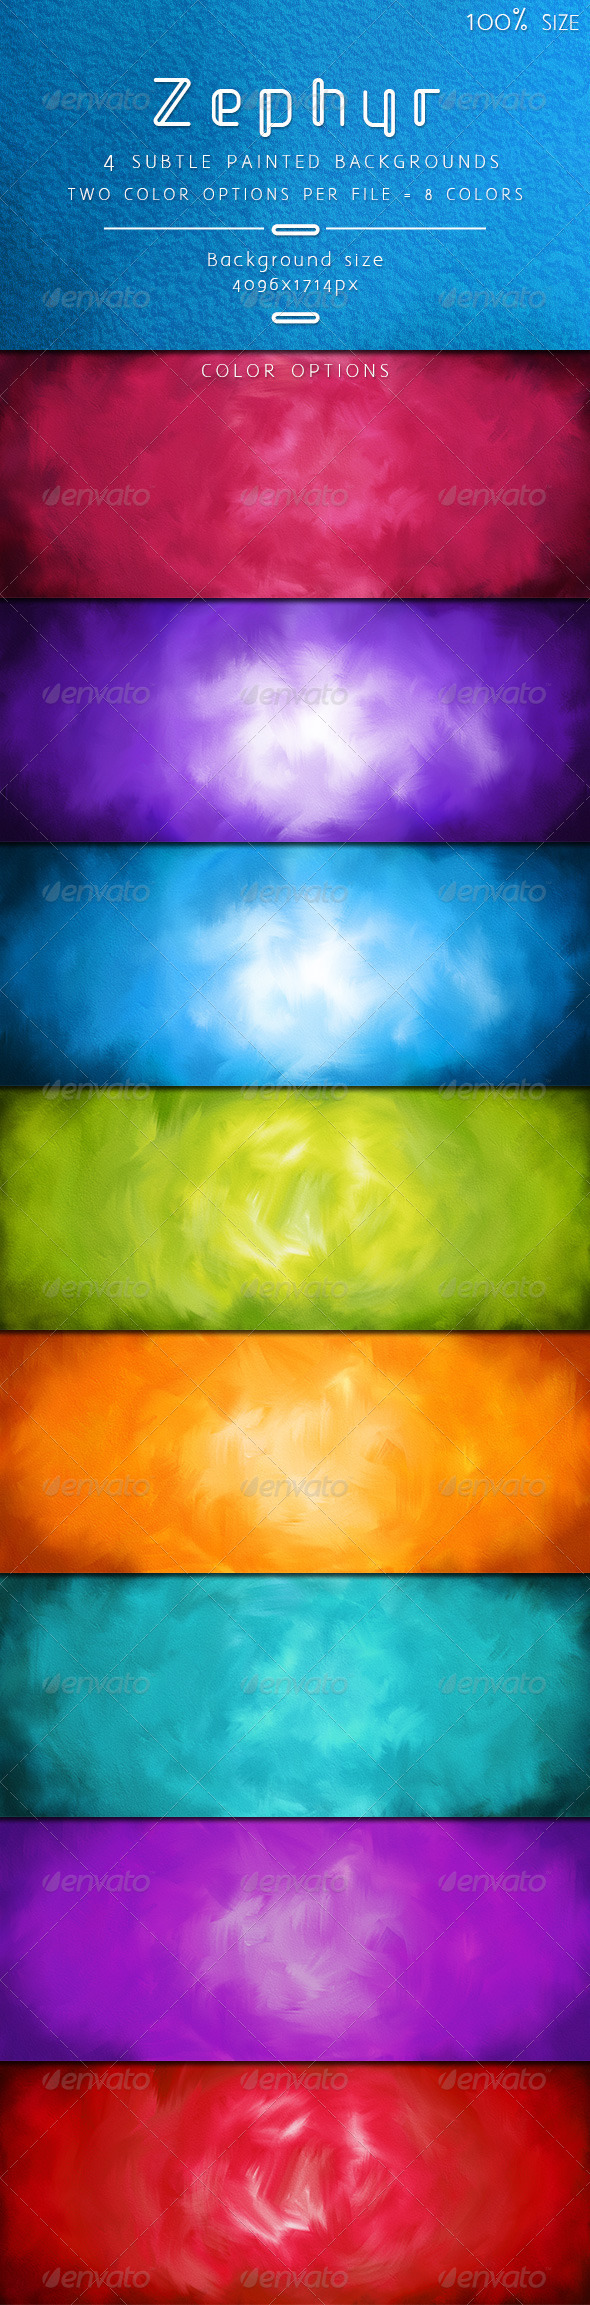 GraphicRiver Zephyr Subtle Painted Backgrounds 6842167